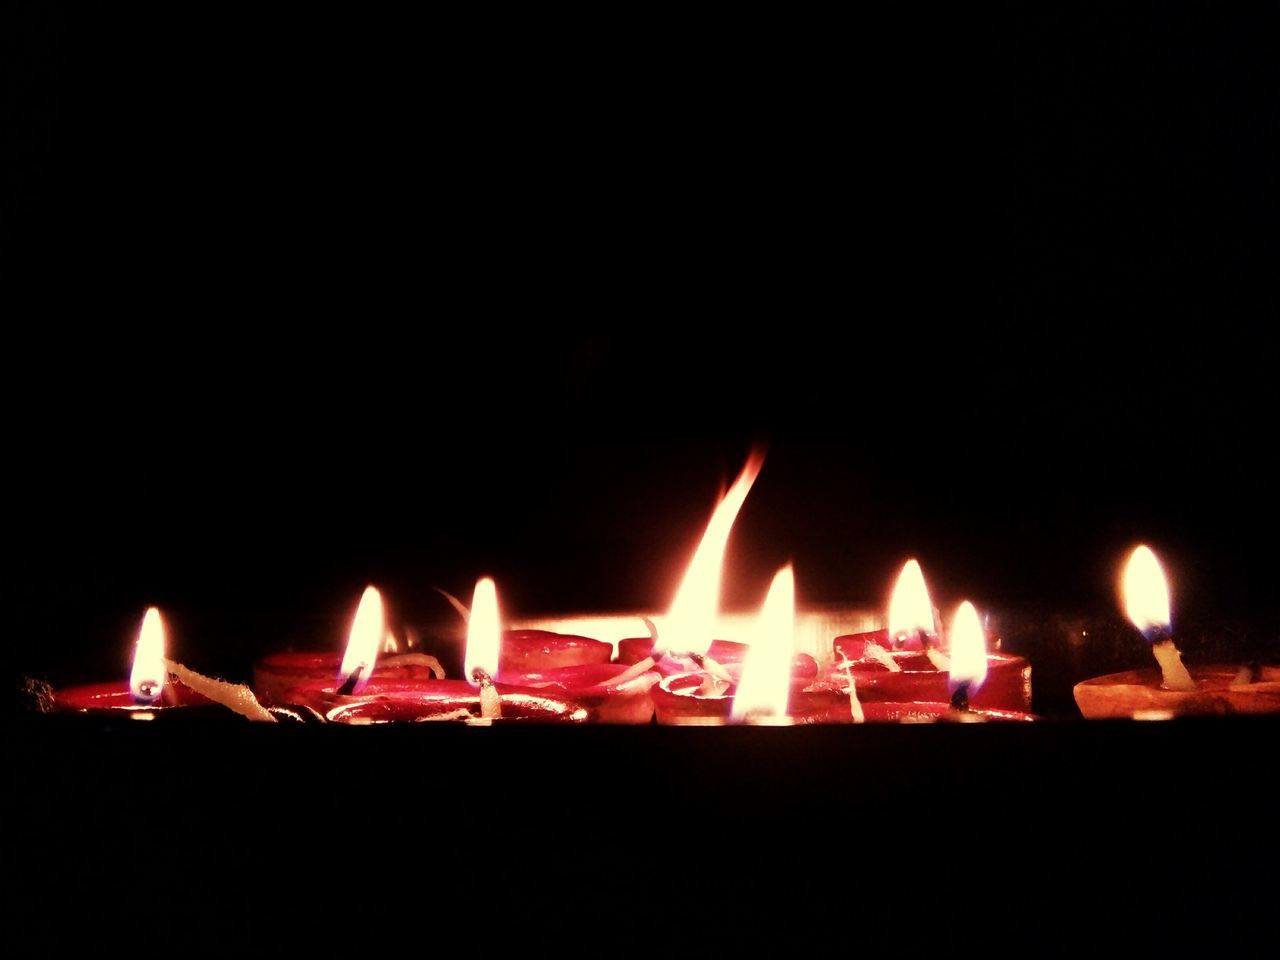 Red Burning Illuminated Night Flame No People Outdoors Black Background Dark Festive Lights Diwali🎆 Diwali Celebration Diwali2016 Diyas✨✨ DiyasForDiwali